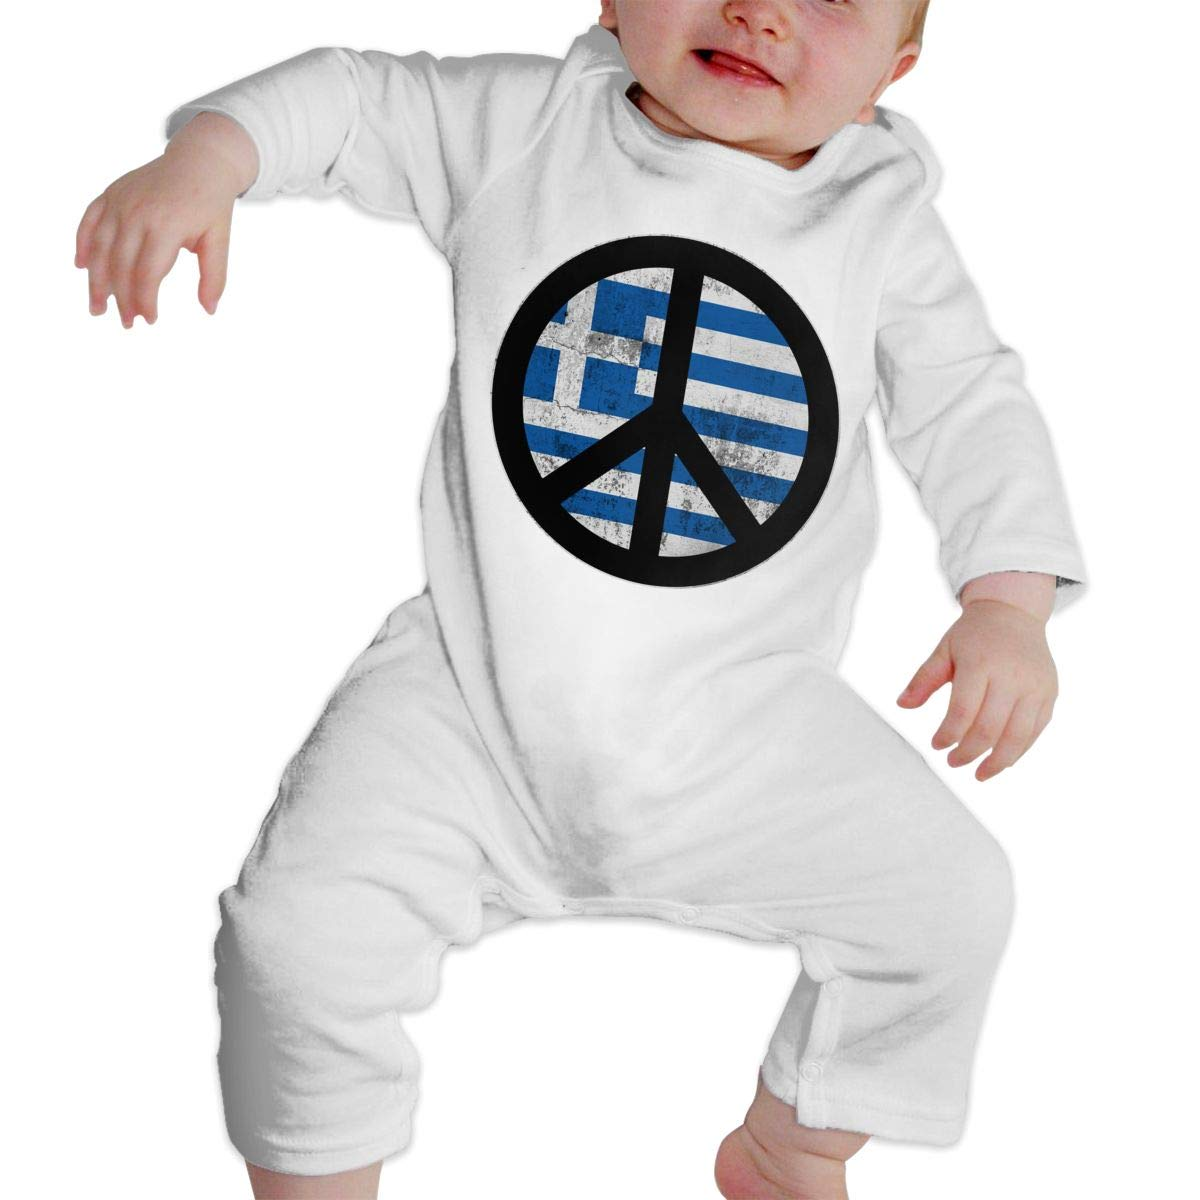 A1BY-5US Infant Baby Boys Girls Cotton Long Sleeve Greece Greek Flag Peace Sign Jumpsuit Romper Funny Printed Romper Clothes